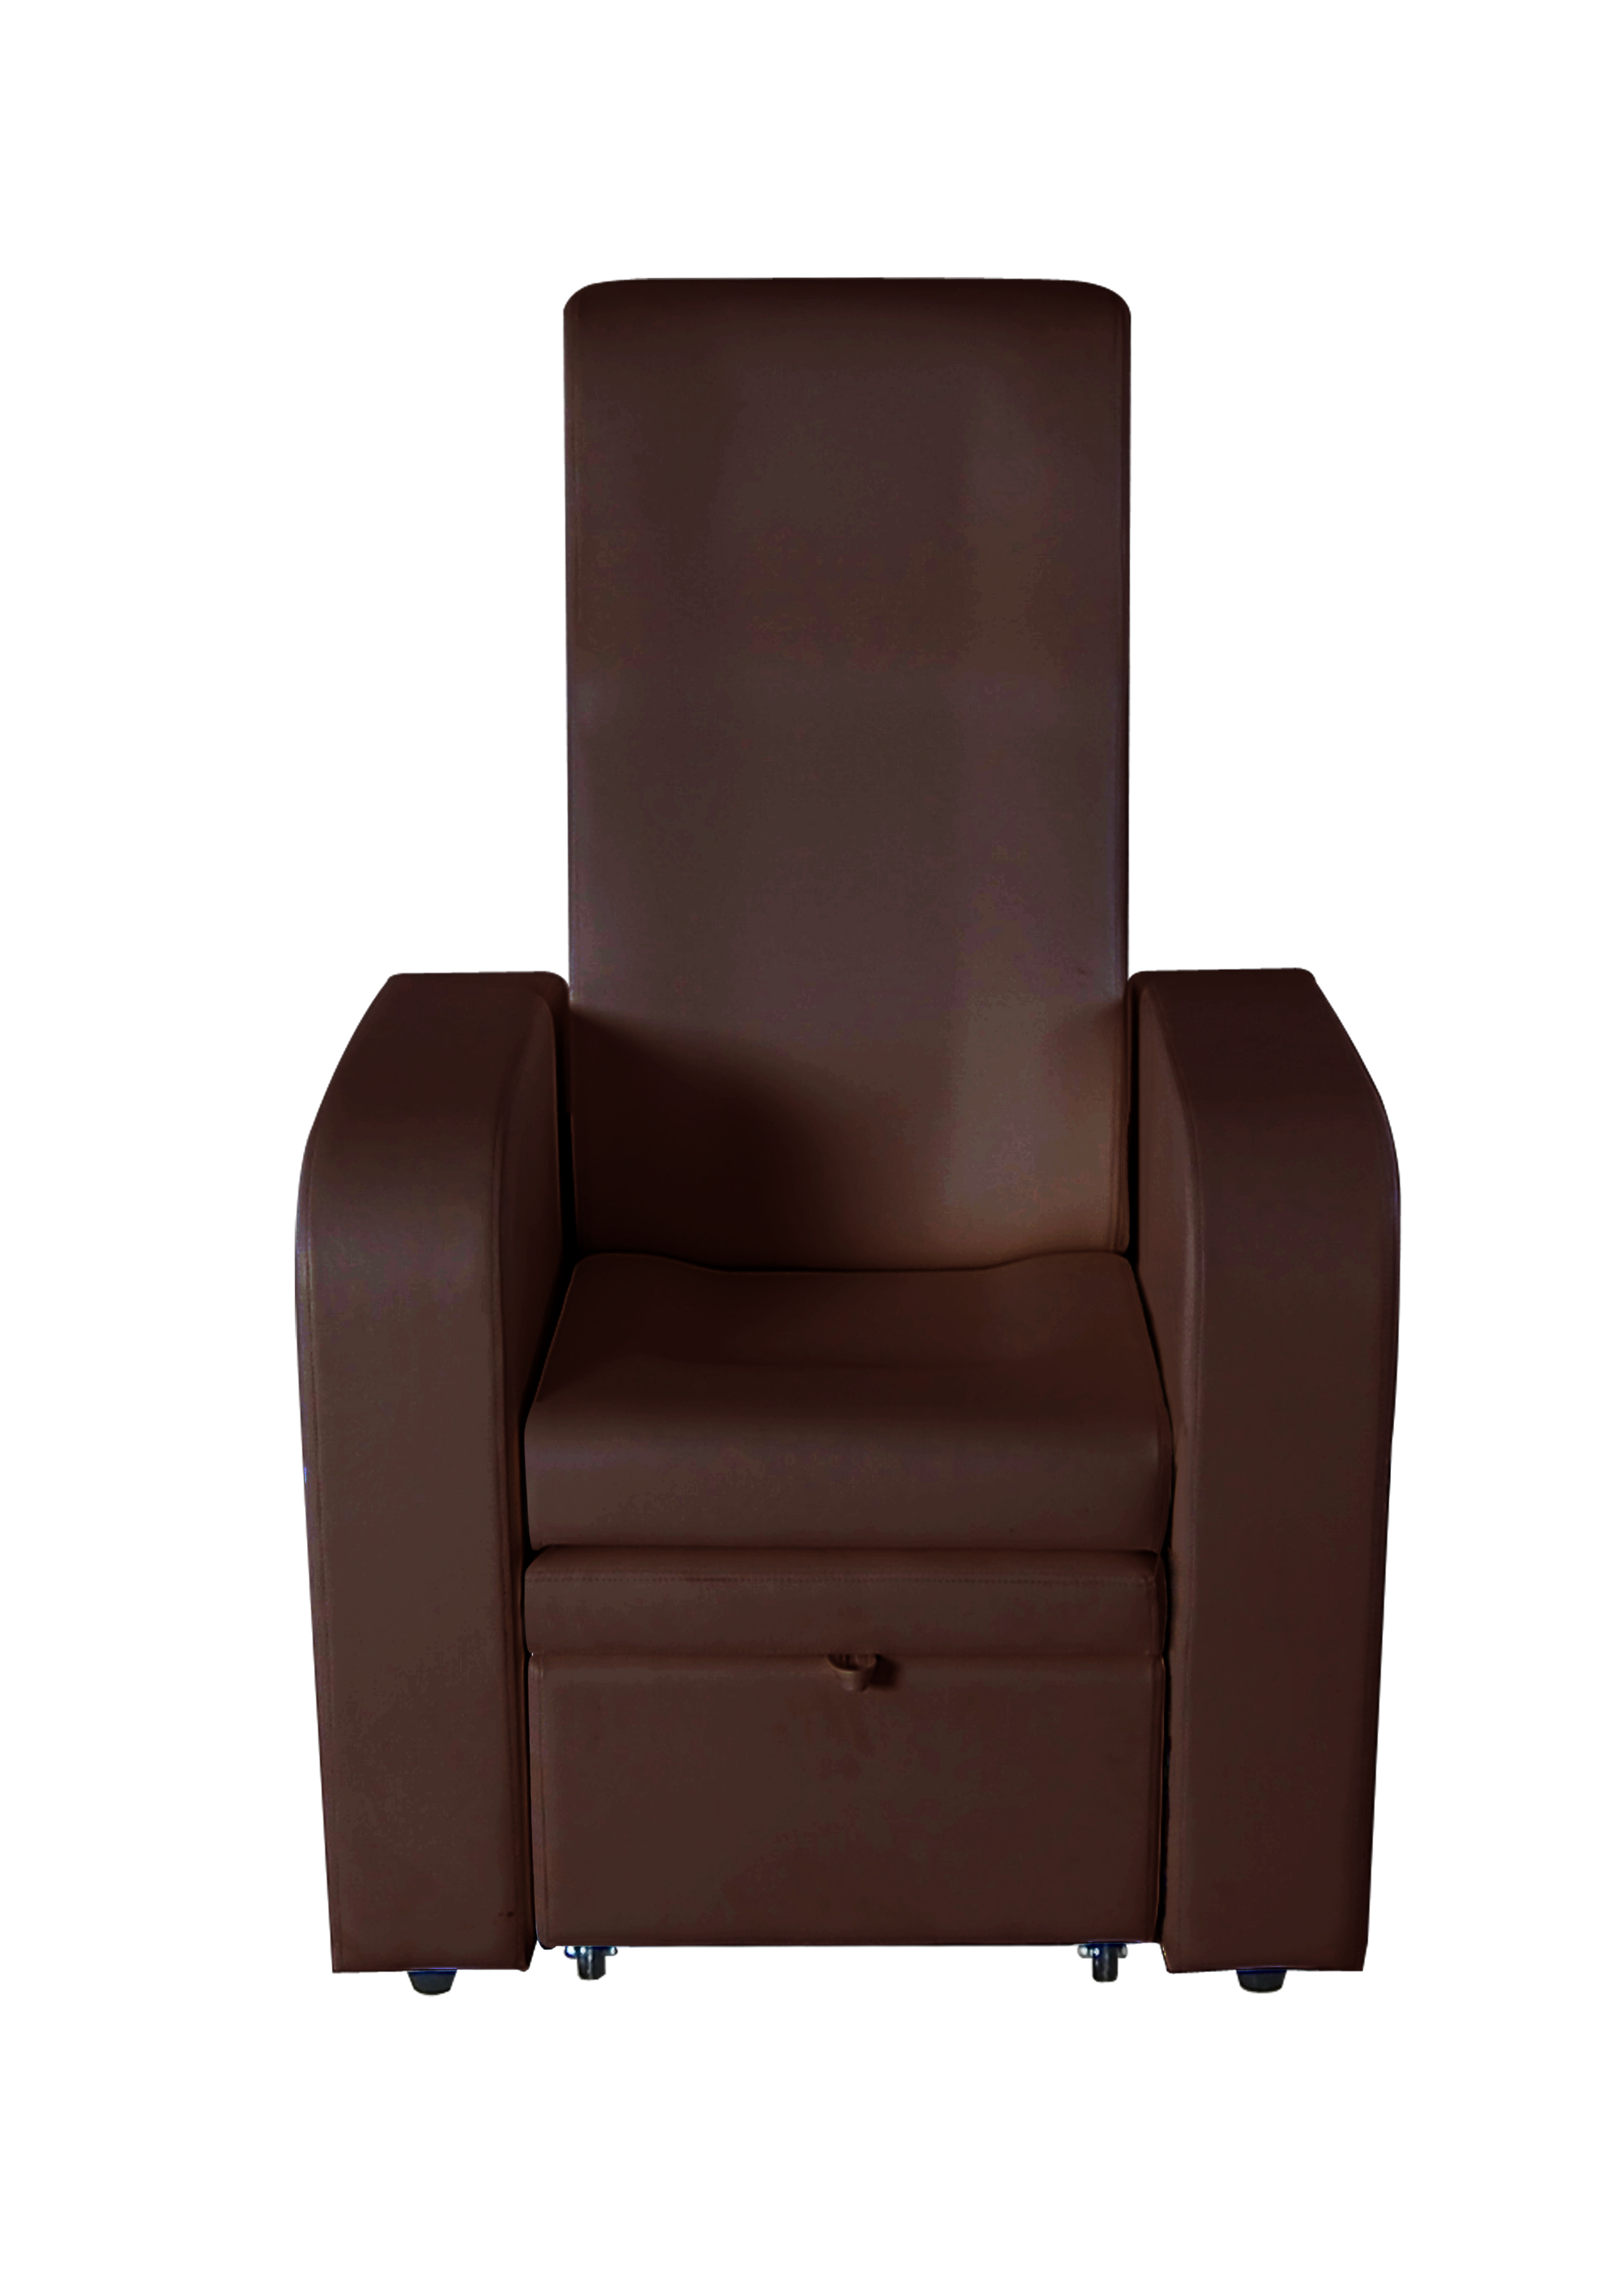 Foot Spa Furniture Pedicure Chair Australian Owned Hydraulic and Reclining Chairs